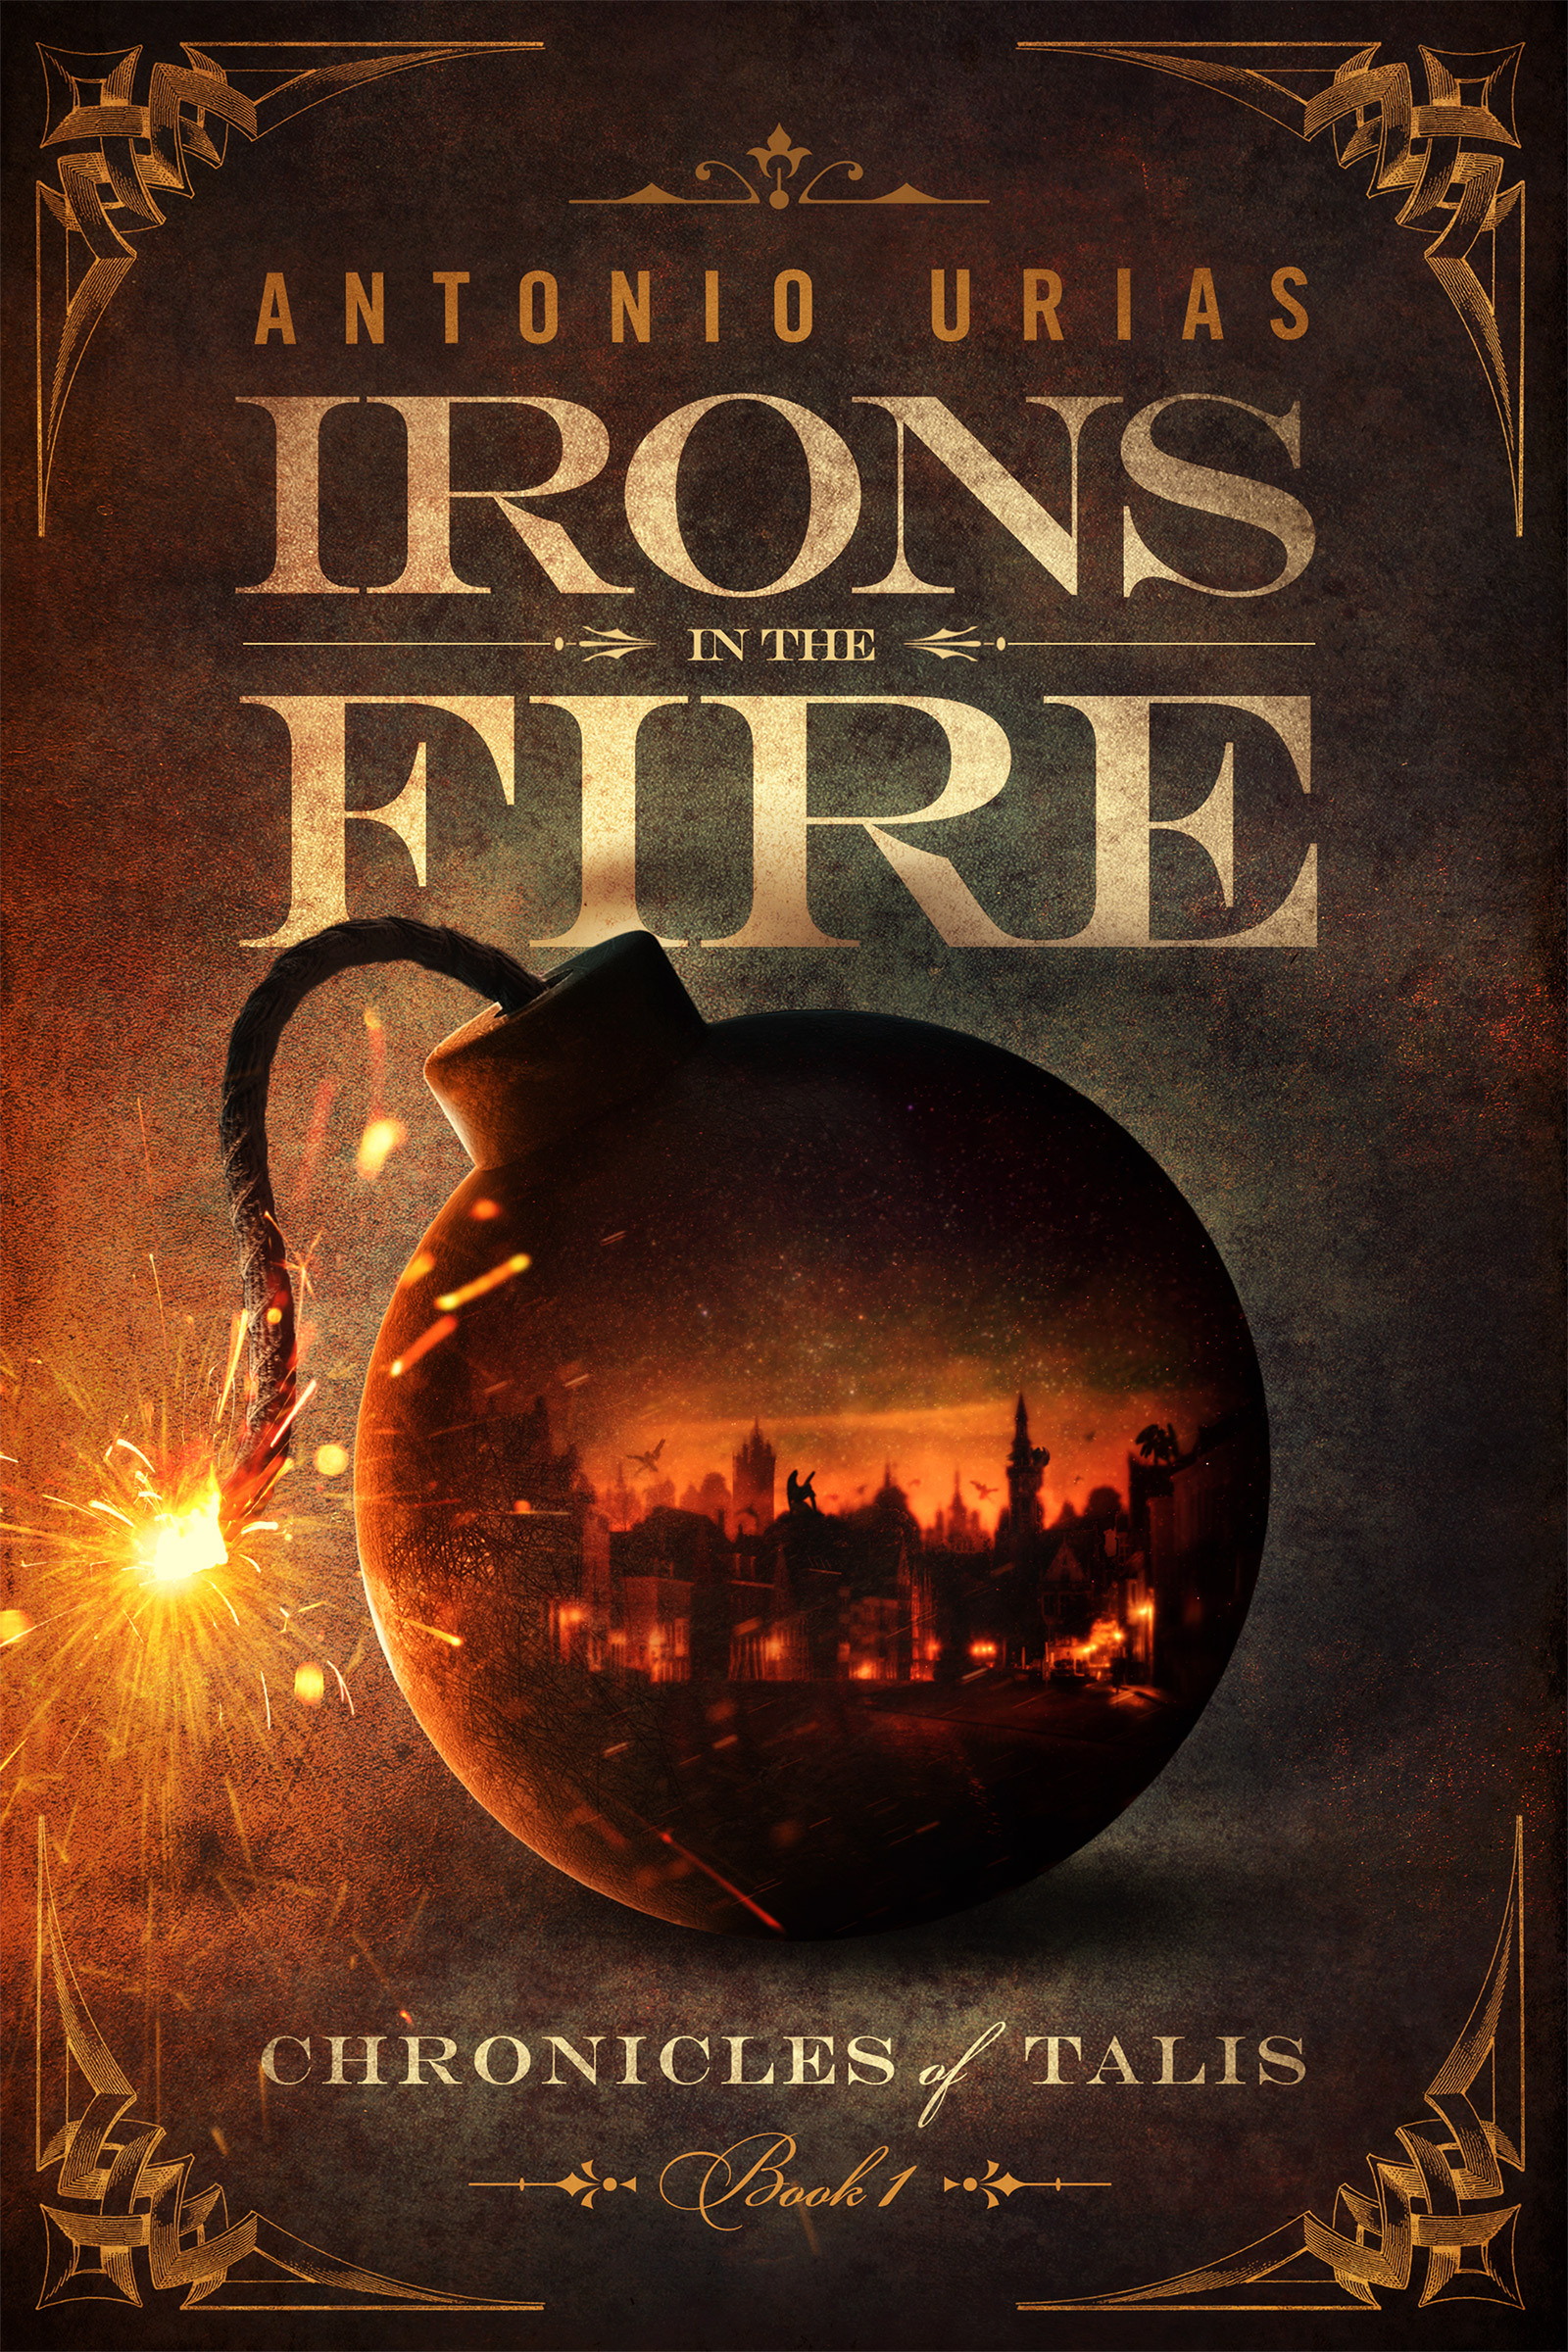 Irons in the Fire (Chronicles of Talis, #1) Antonio Urias